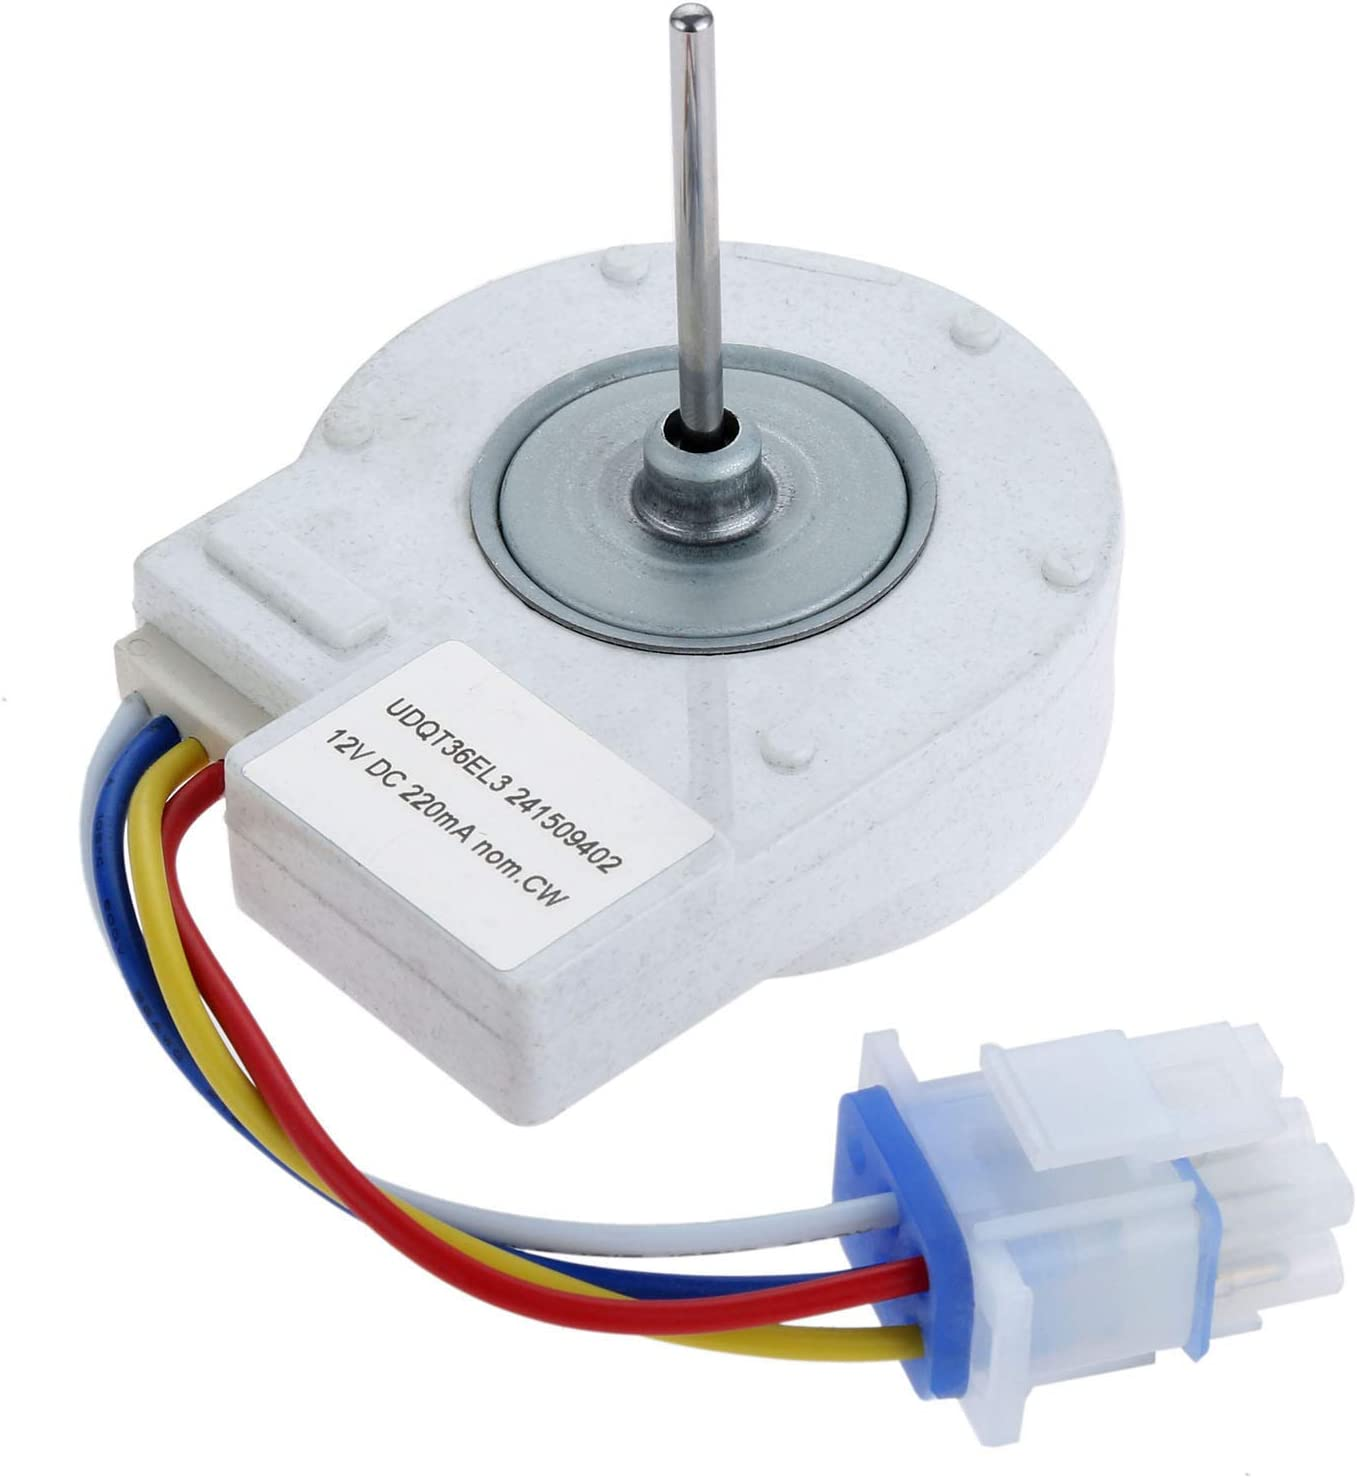 Dreld WR60X10209 Refrigerator Condenser Fan Motor, Replaces Part # WR60X10155 WR60X10216 WR60X10042 LP15442 WR60X10065, Replacement Part Fit for GE, Kenmore, Hotpoint, RCA